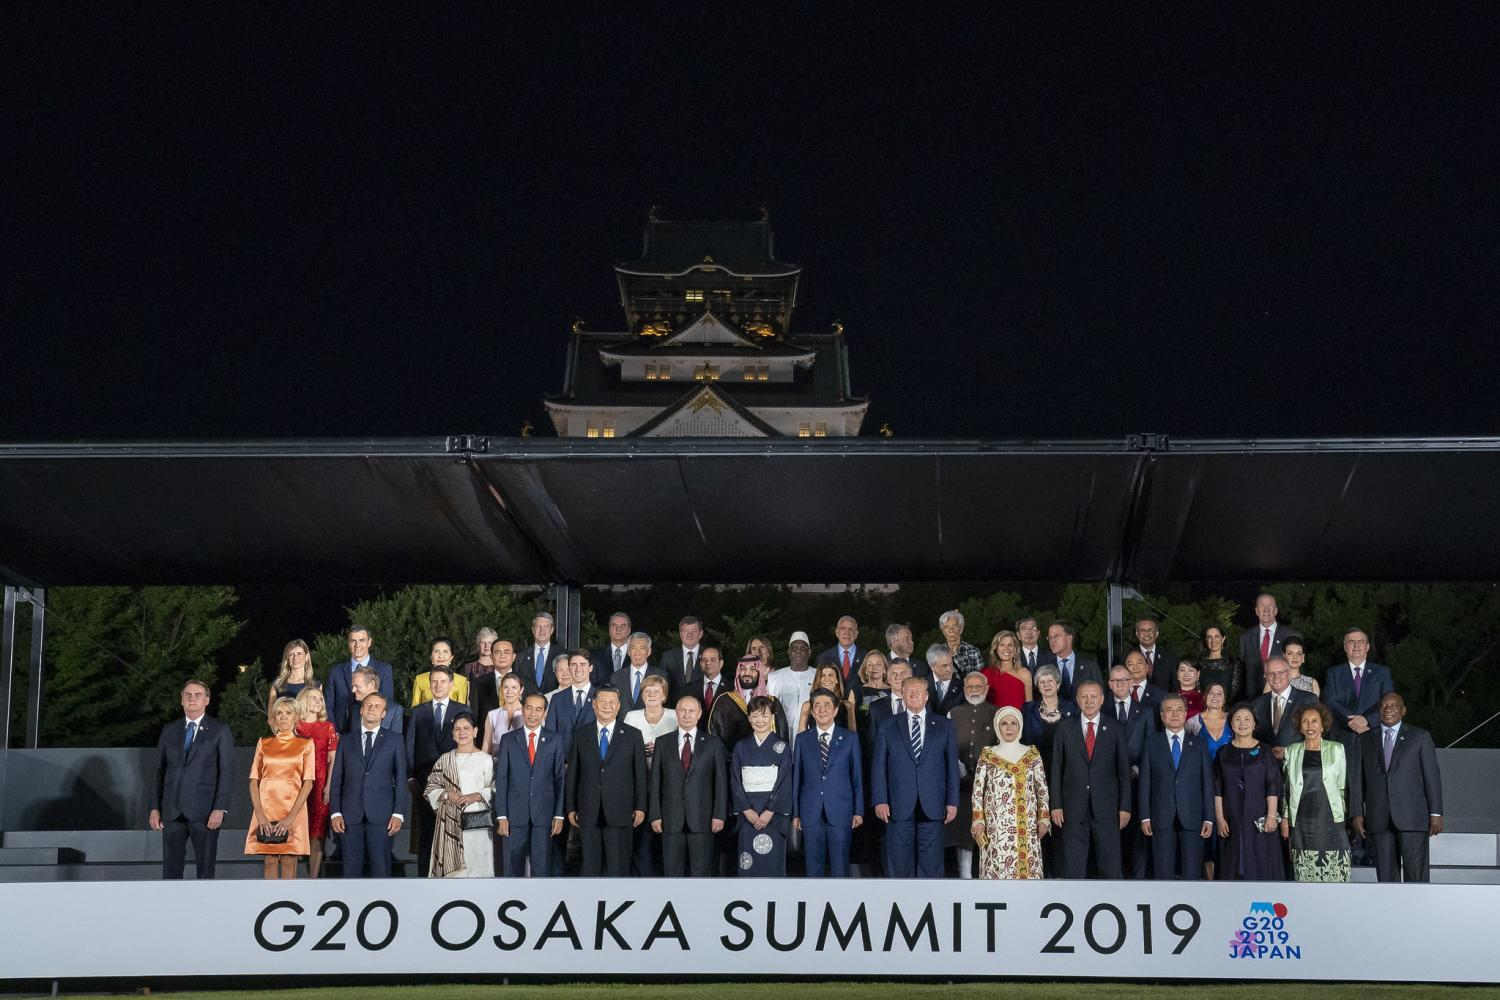 President Donald Trump participates in a group photo during G20 Cultural Program